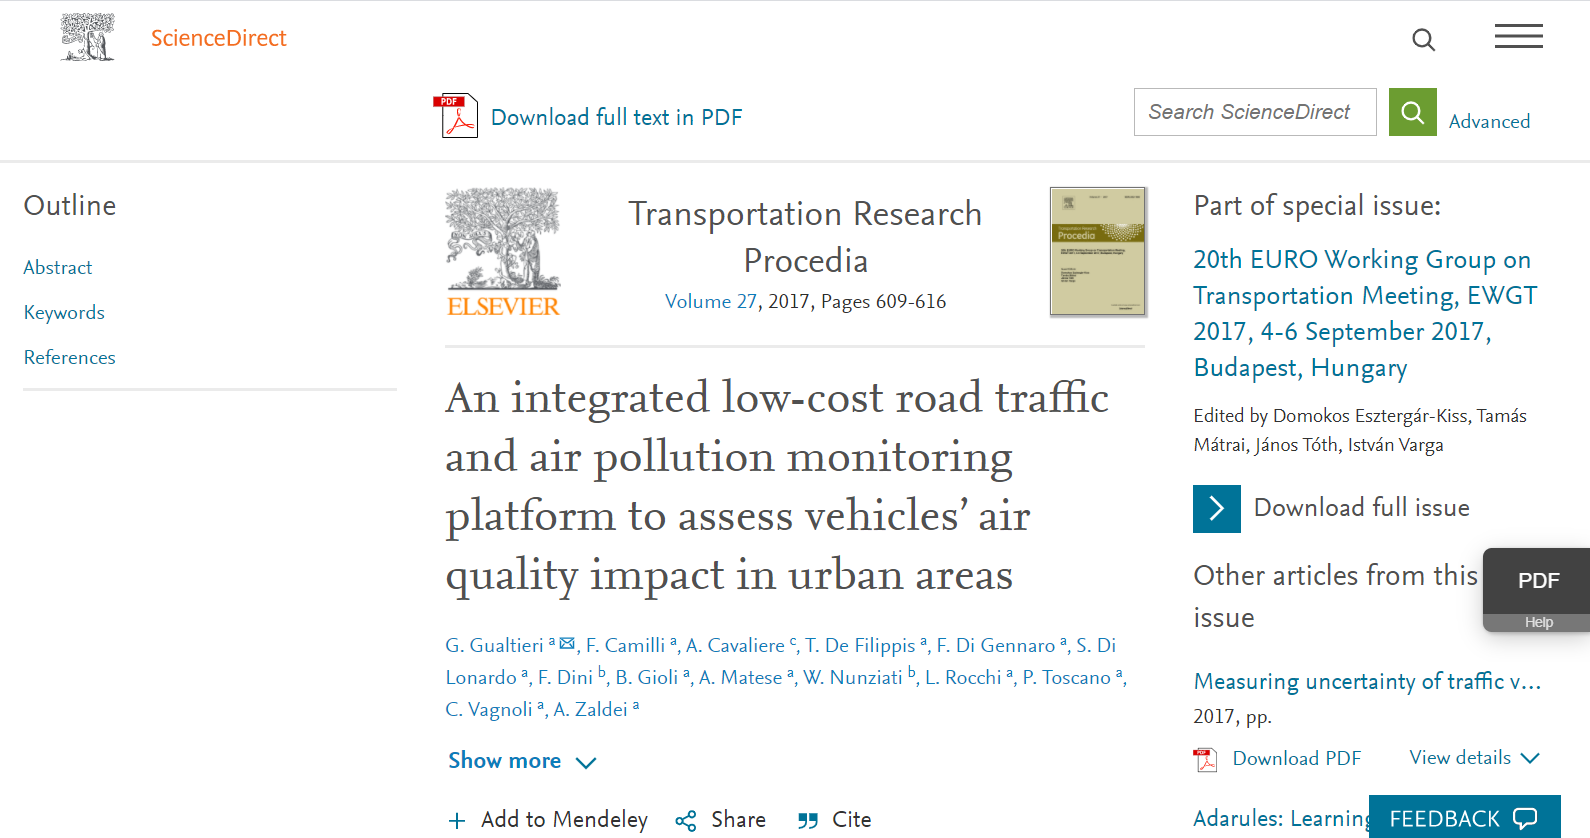 An integrated low-cost road traffic and air pollution monitoring platform to assess vehicles' air quality impact in urban areas